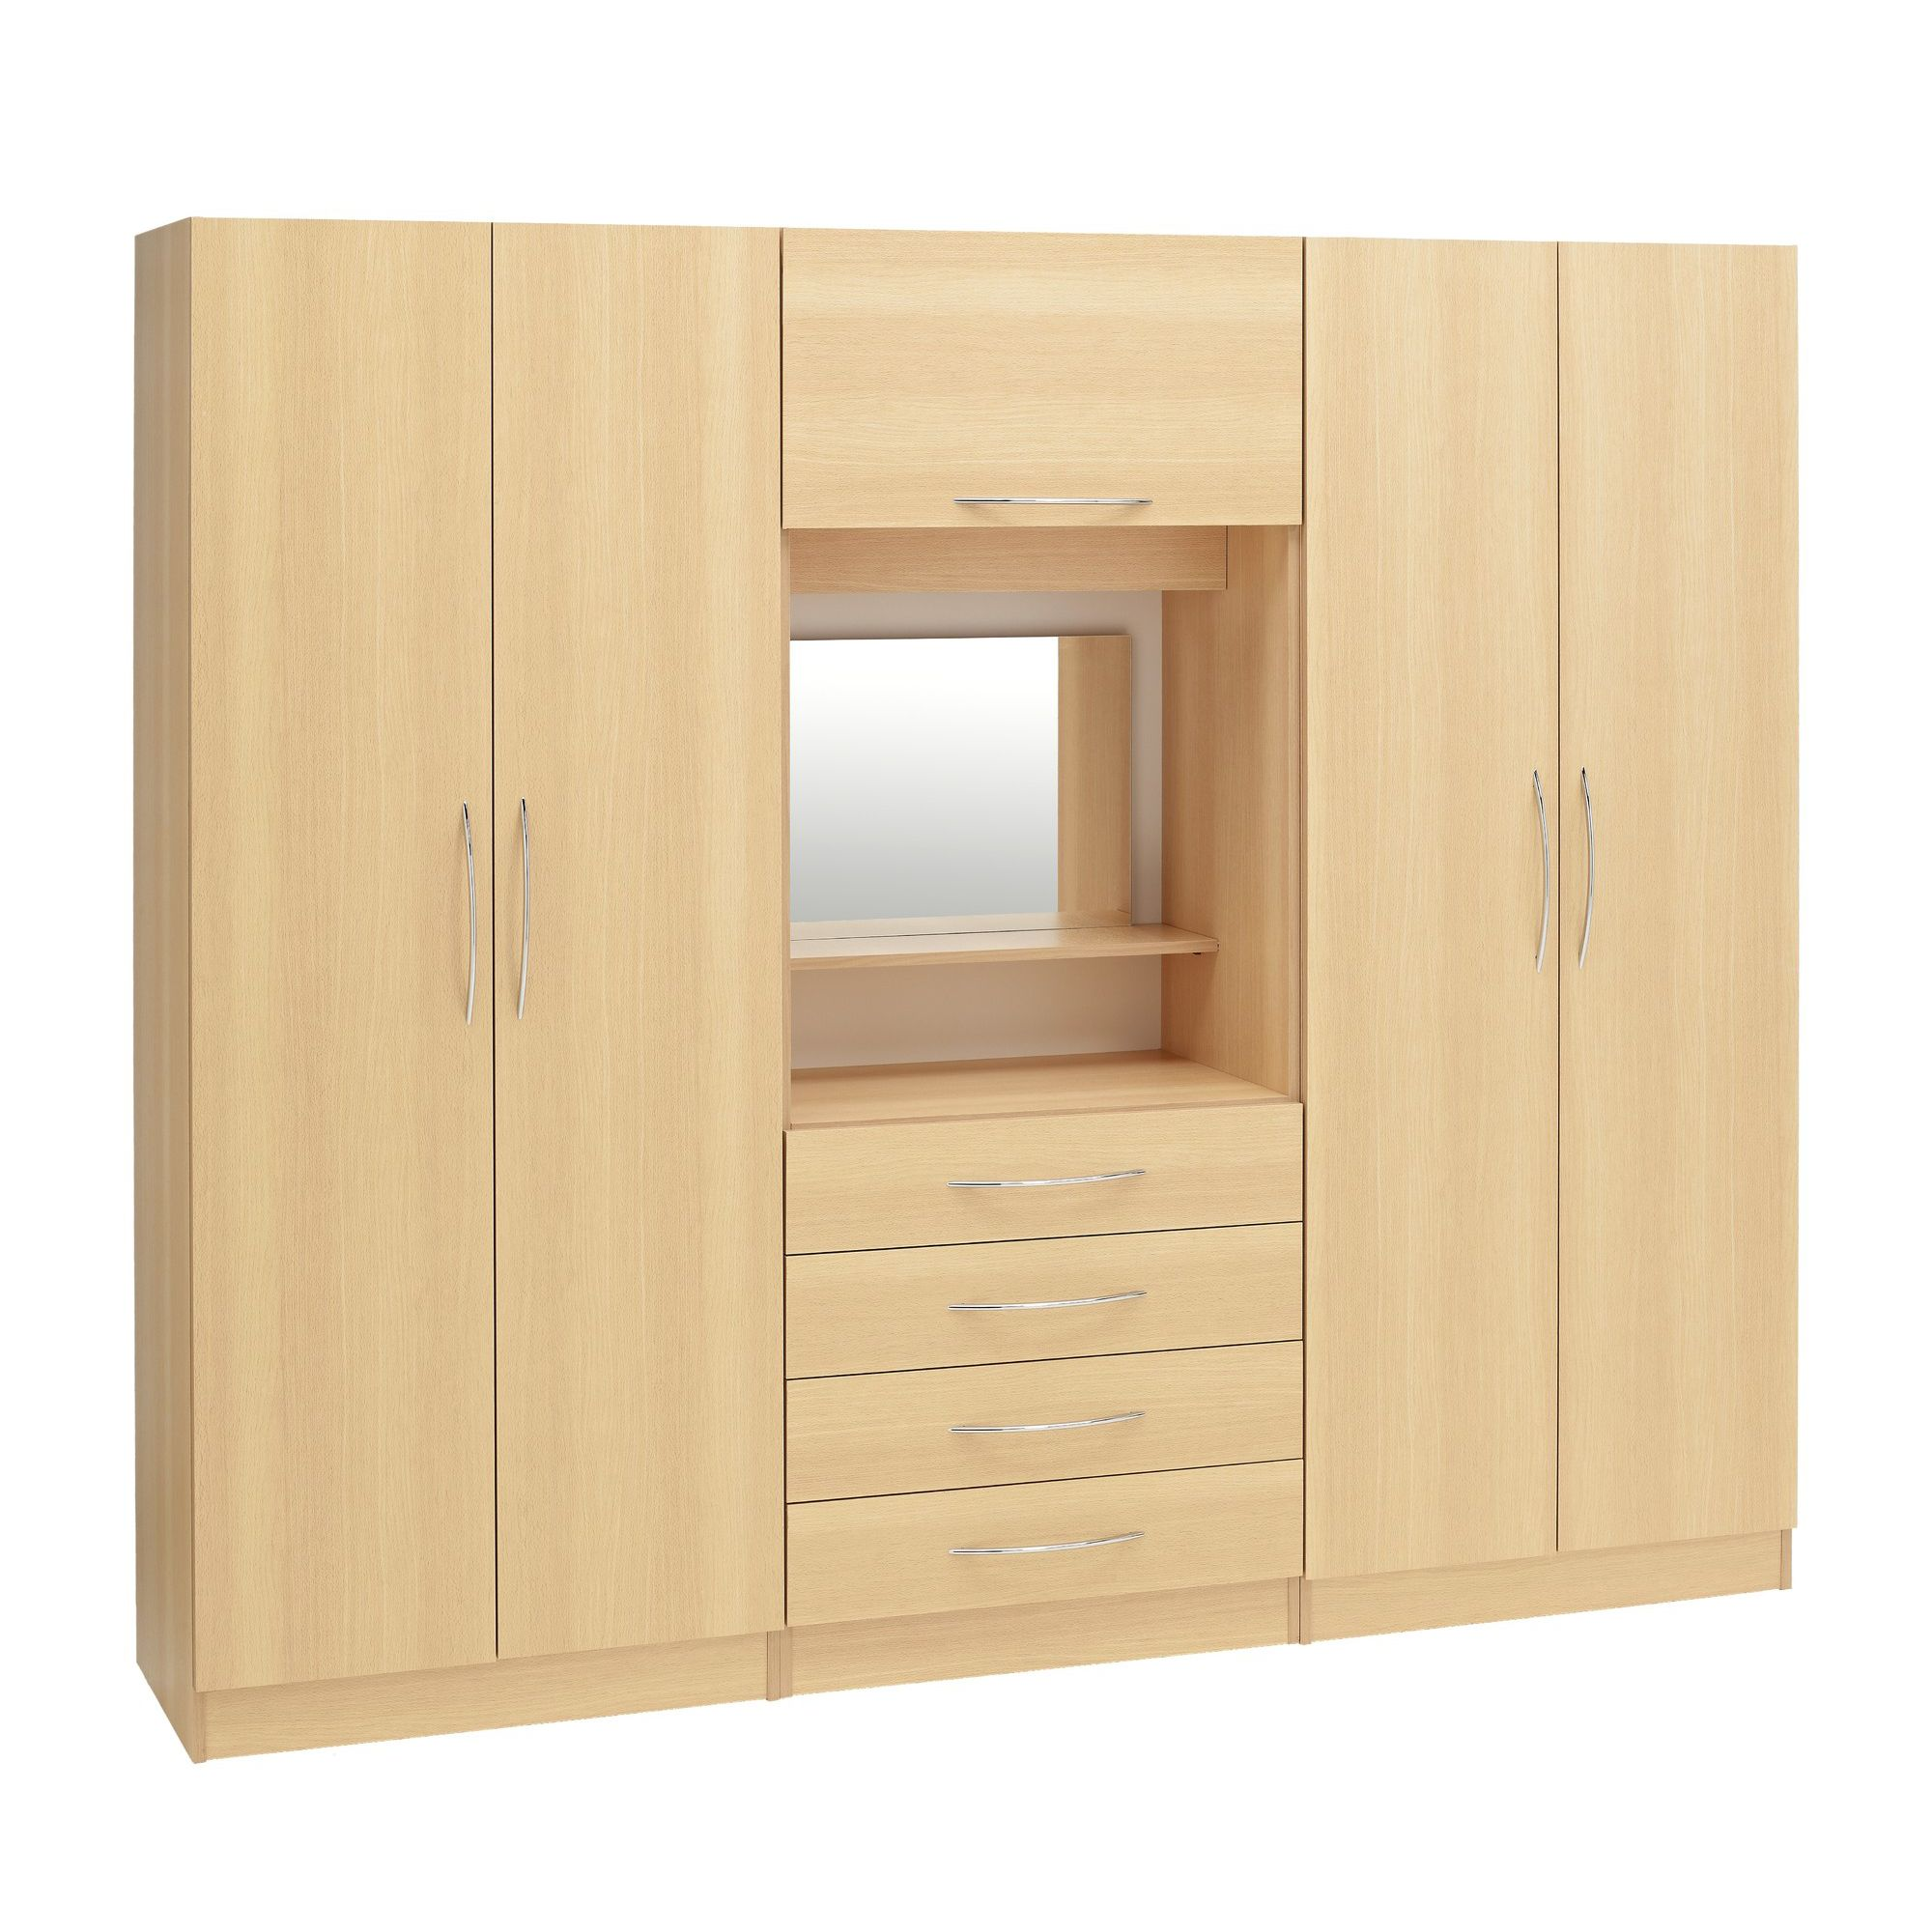 Ideal Furniture Alaska 4 door wardrobe with drawers at Tesco Direct